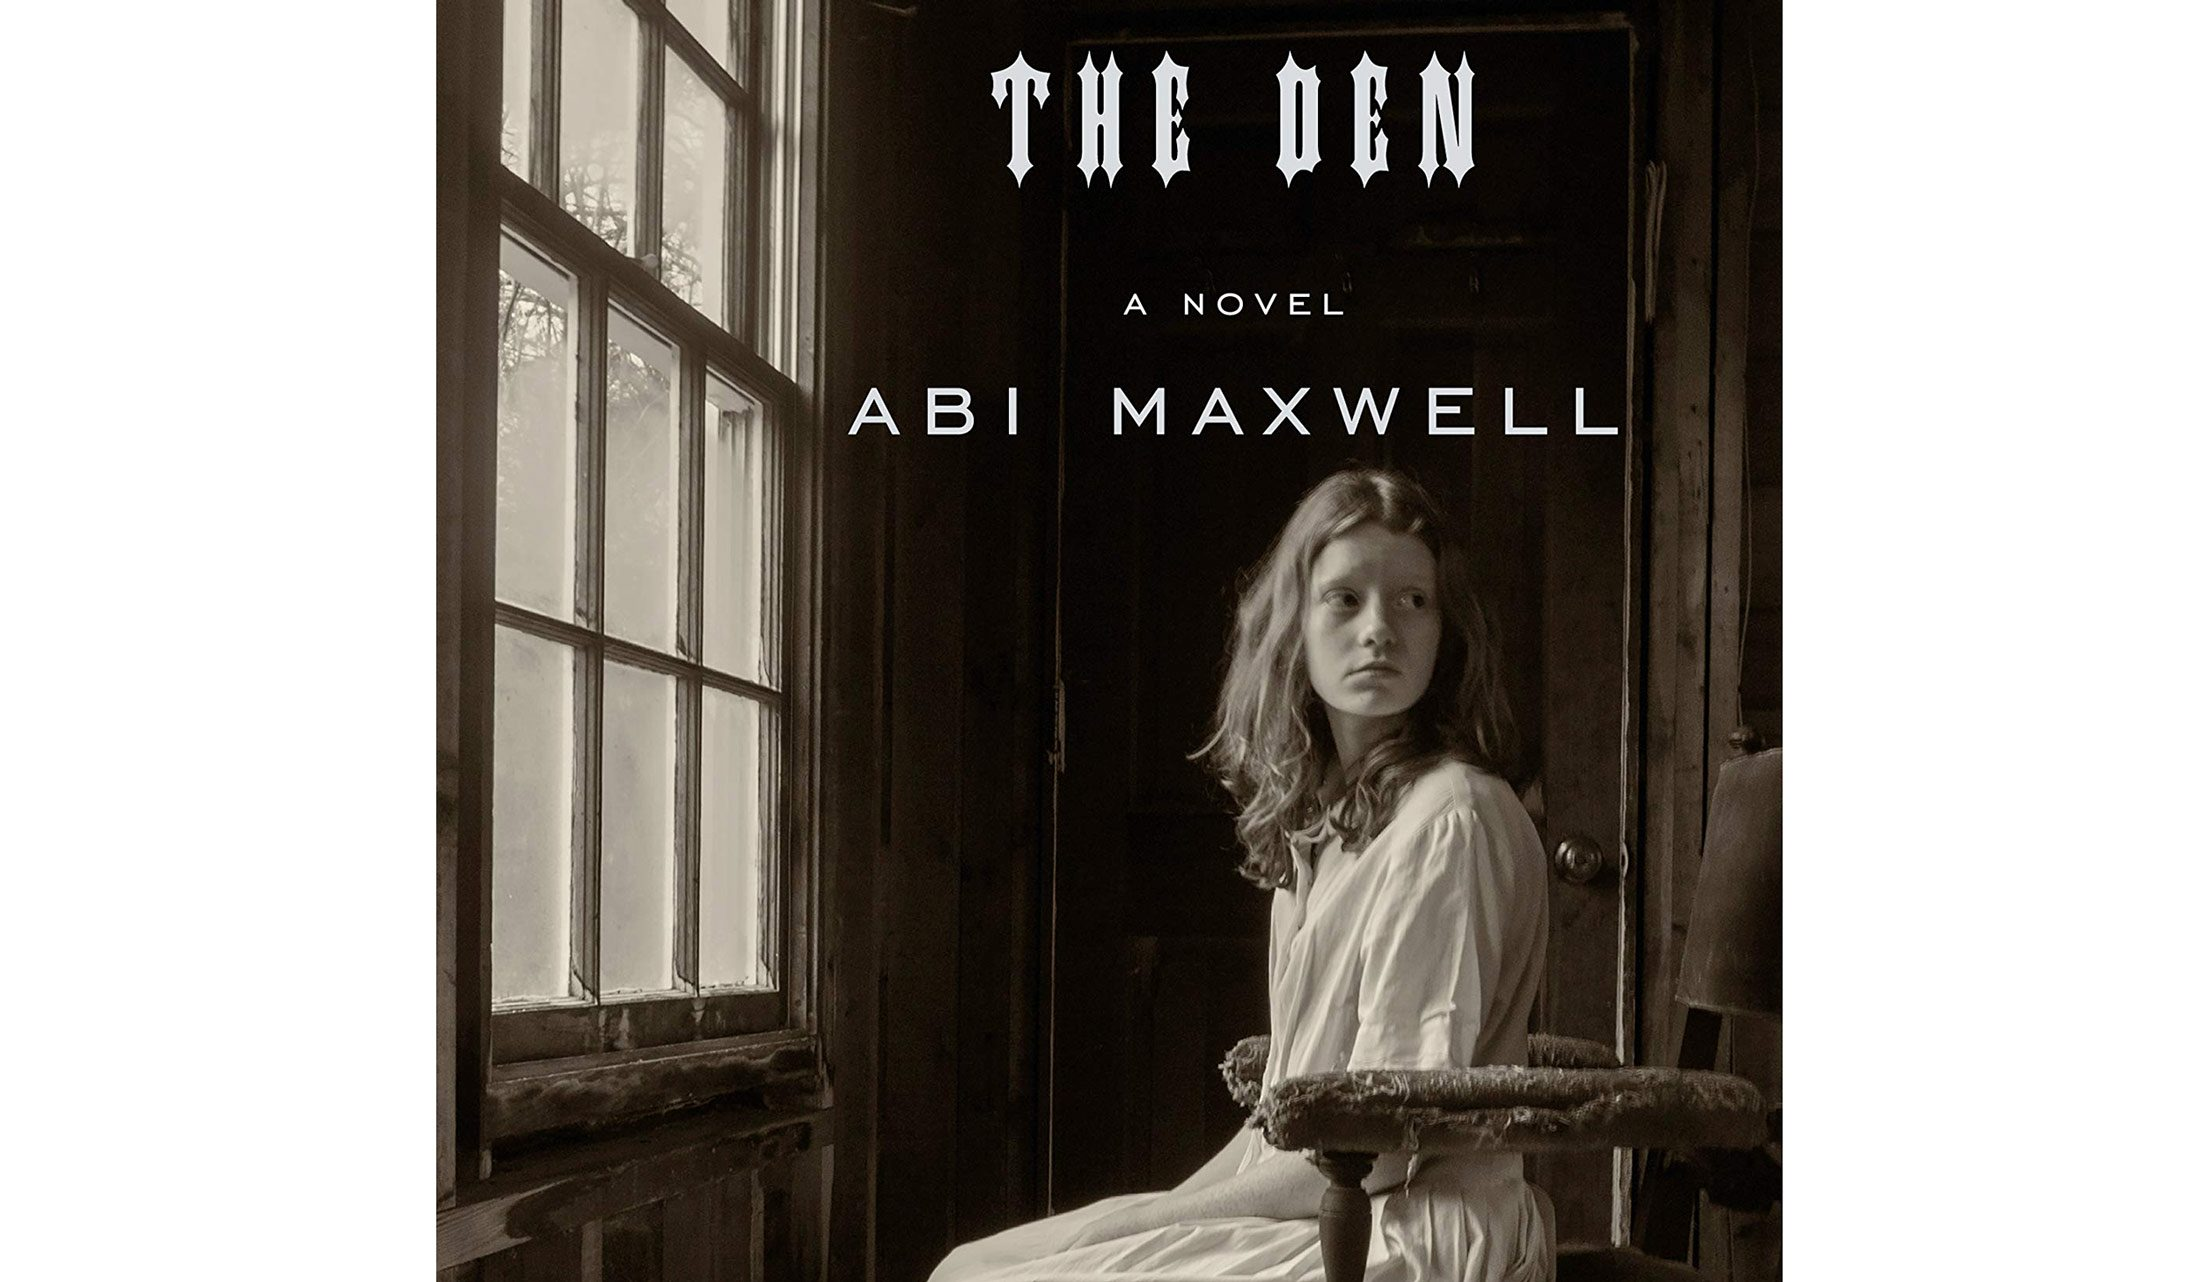 BOOK REVIEW: 'The Den' by Abi Maxwell